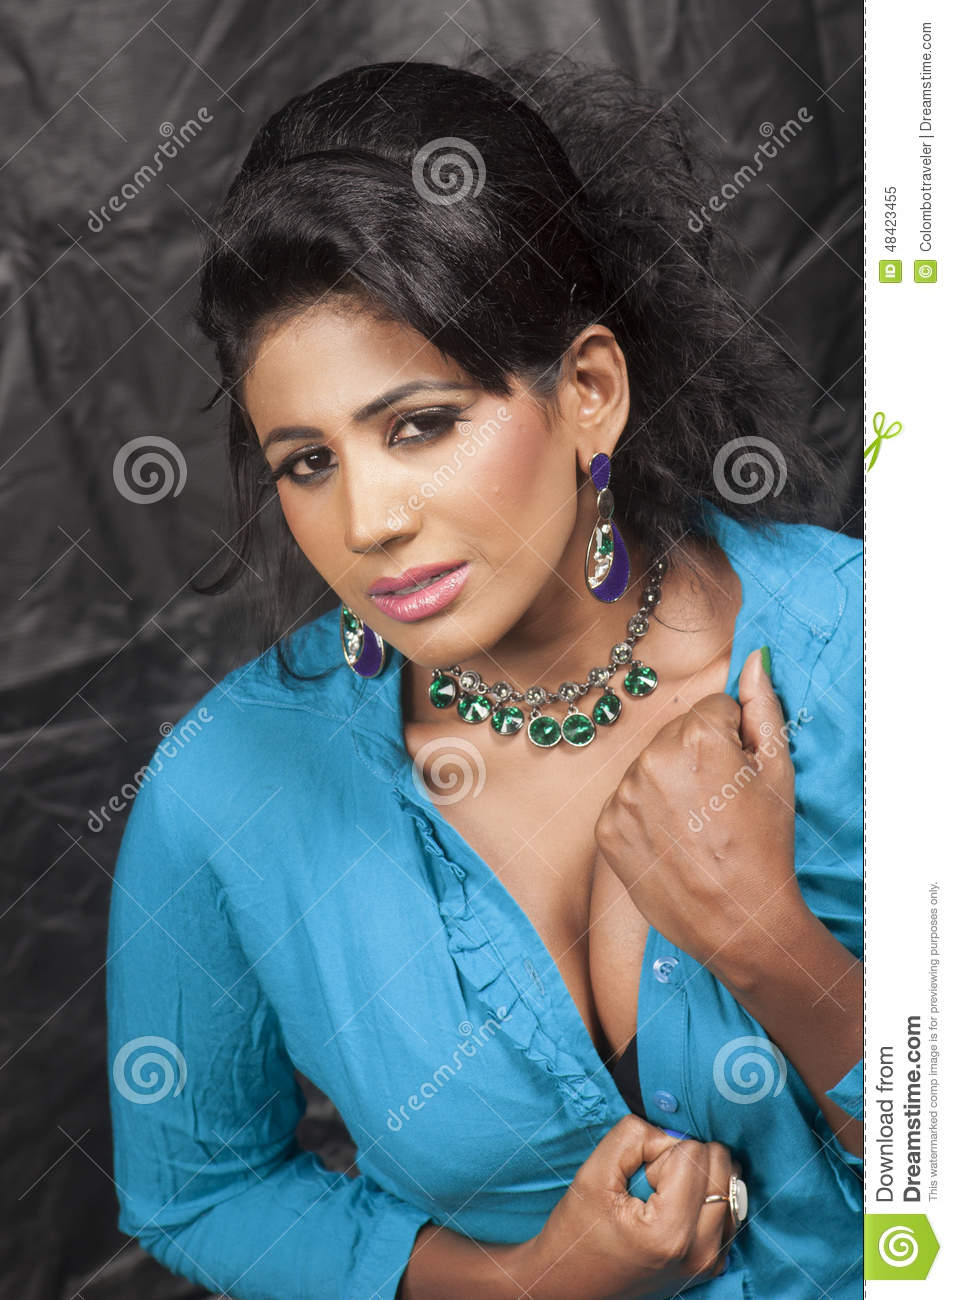 Download Foto Model Beautiful Srilankan Hot Model Stock Image Image Of Srilankan